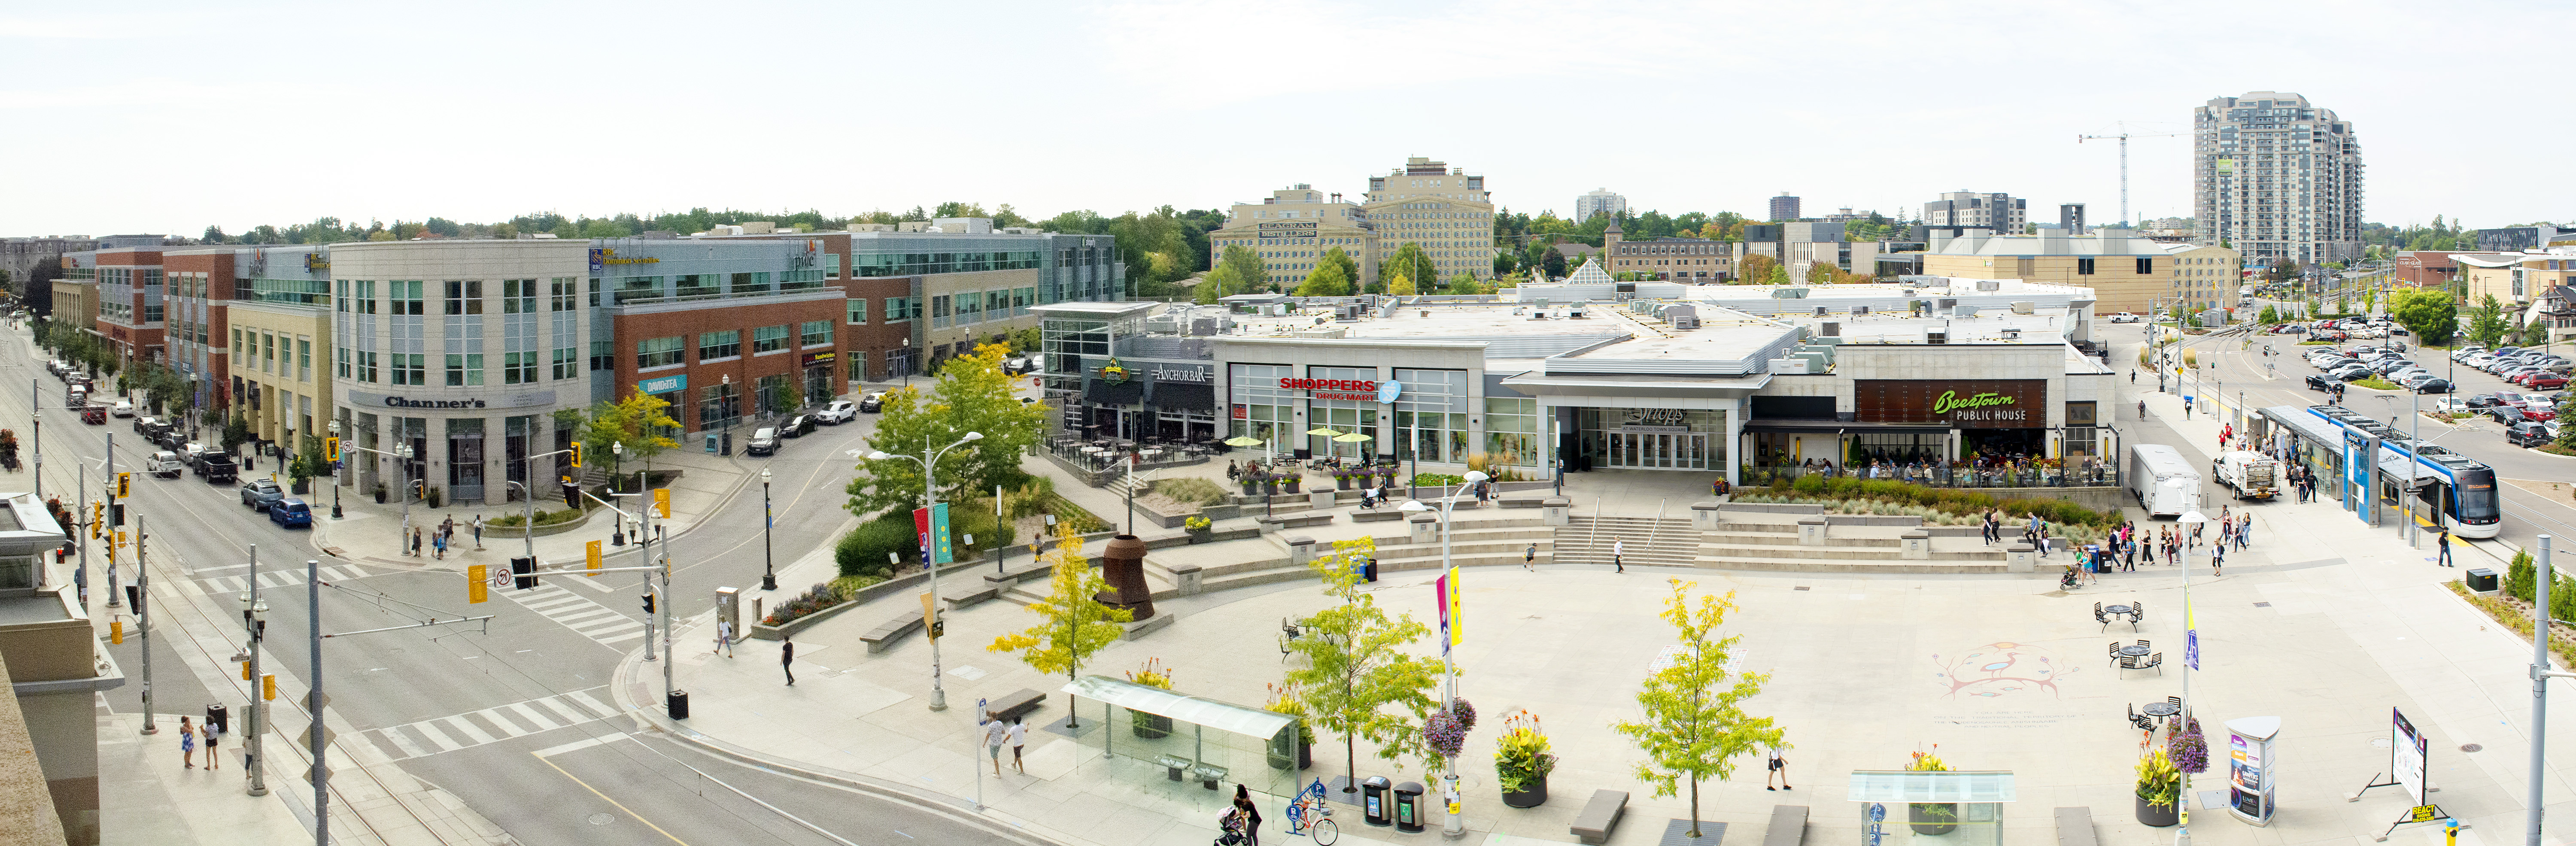 Waterloo Town Square   Retail Spaces For Lease